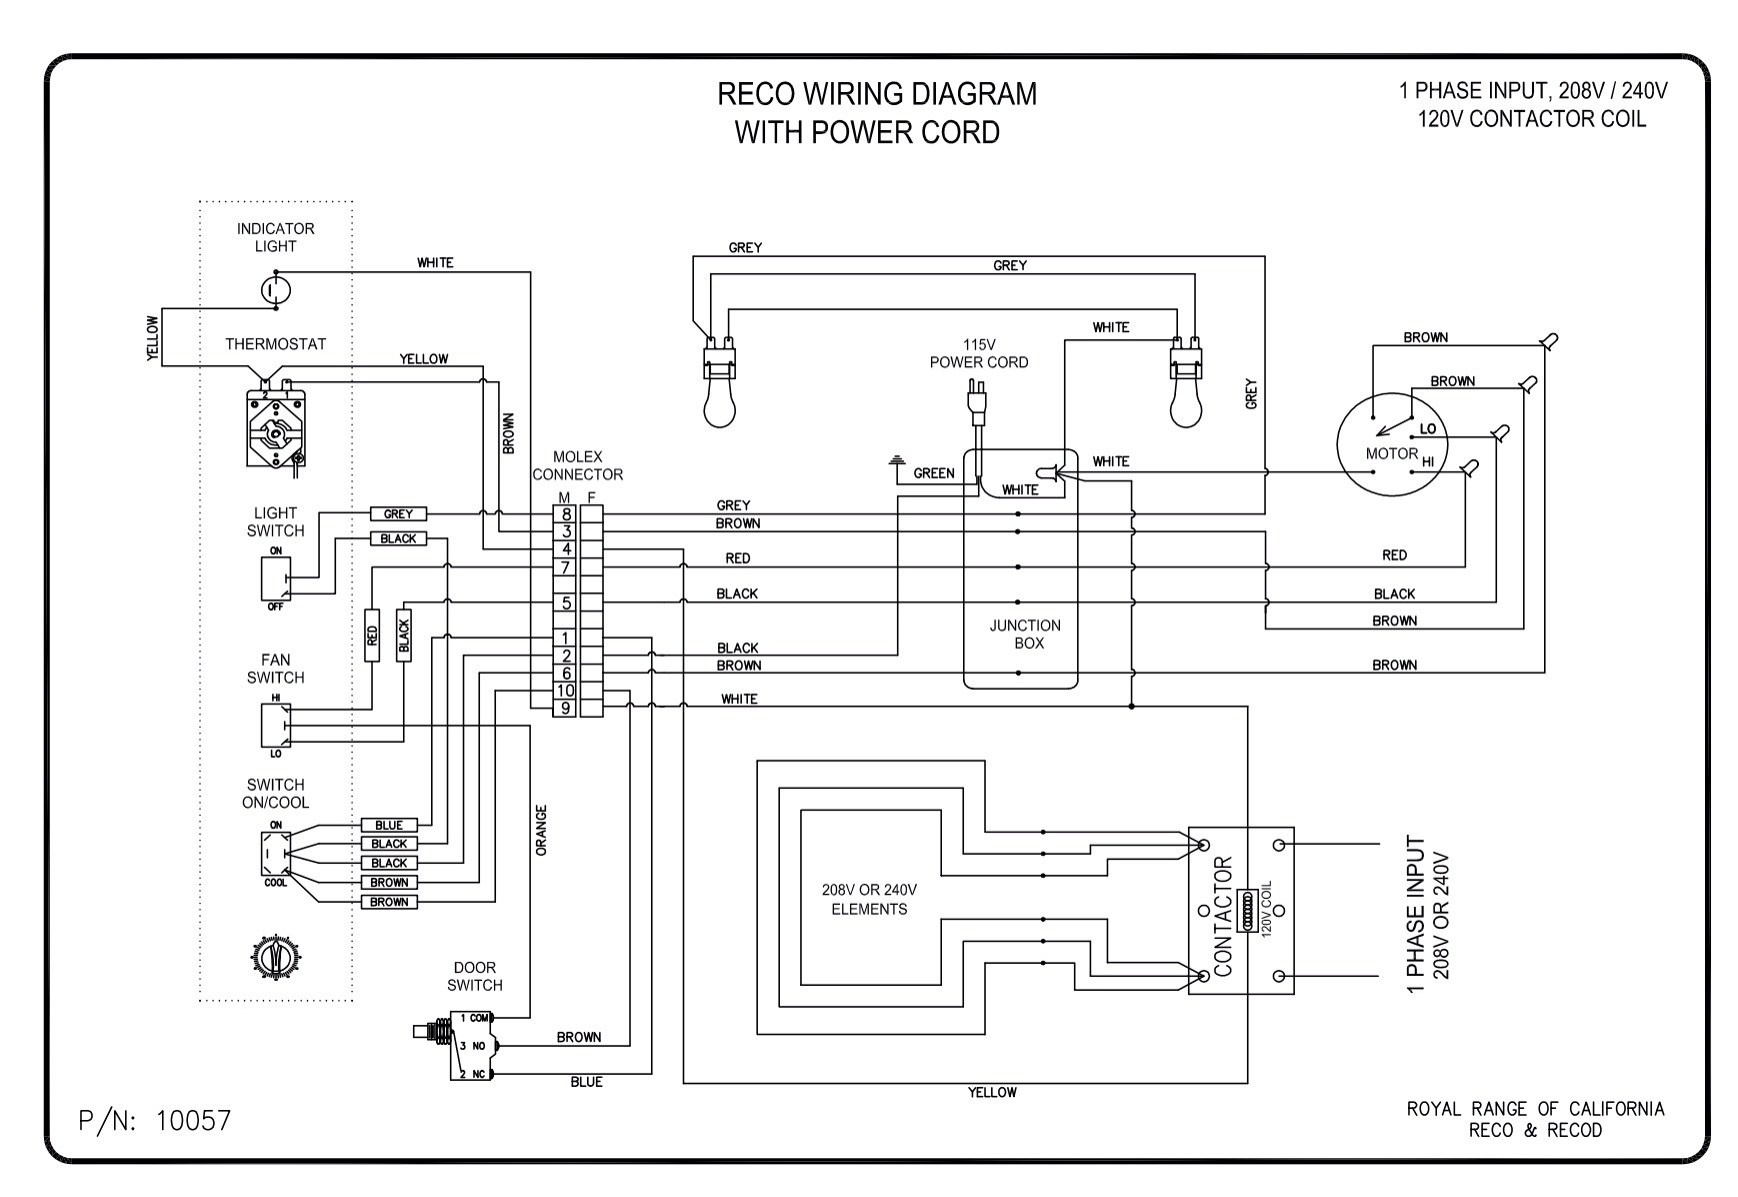 wiring connection diagram 2006 kia sorento diagrams royal range of california